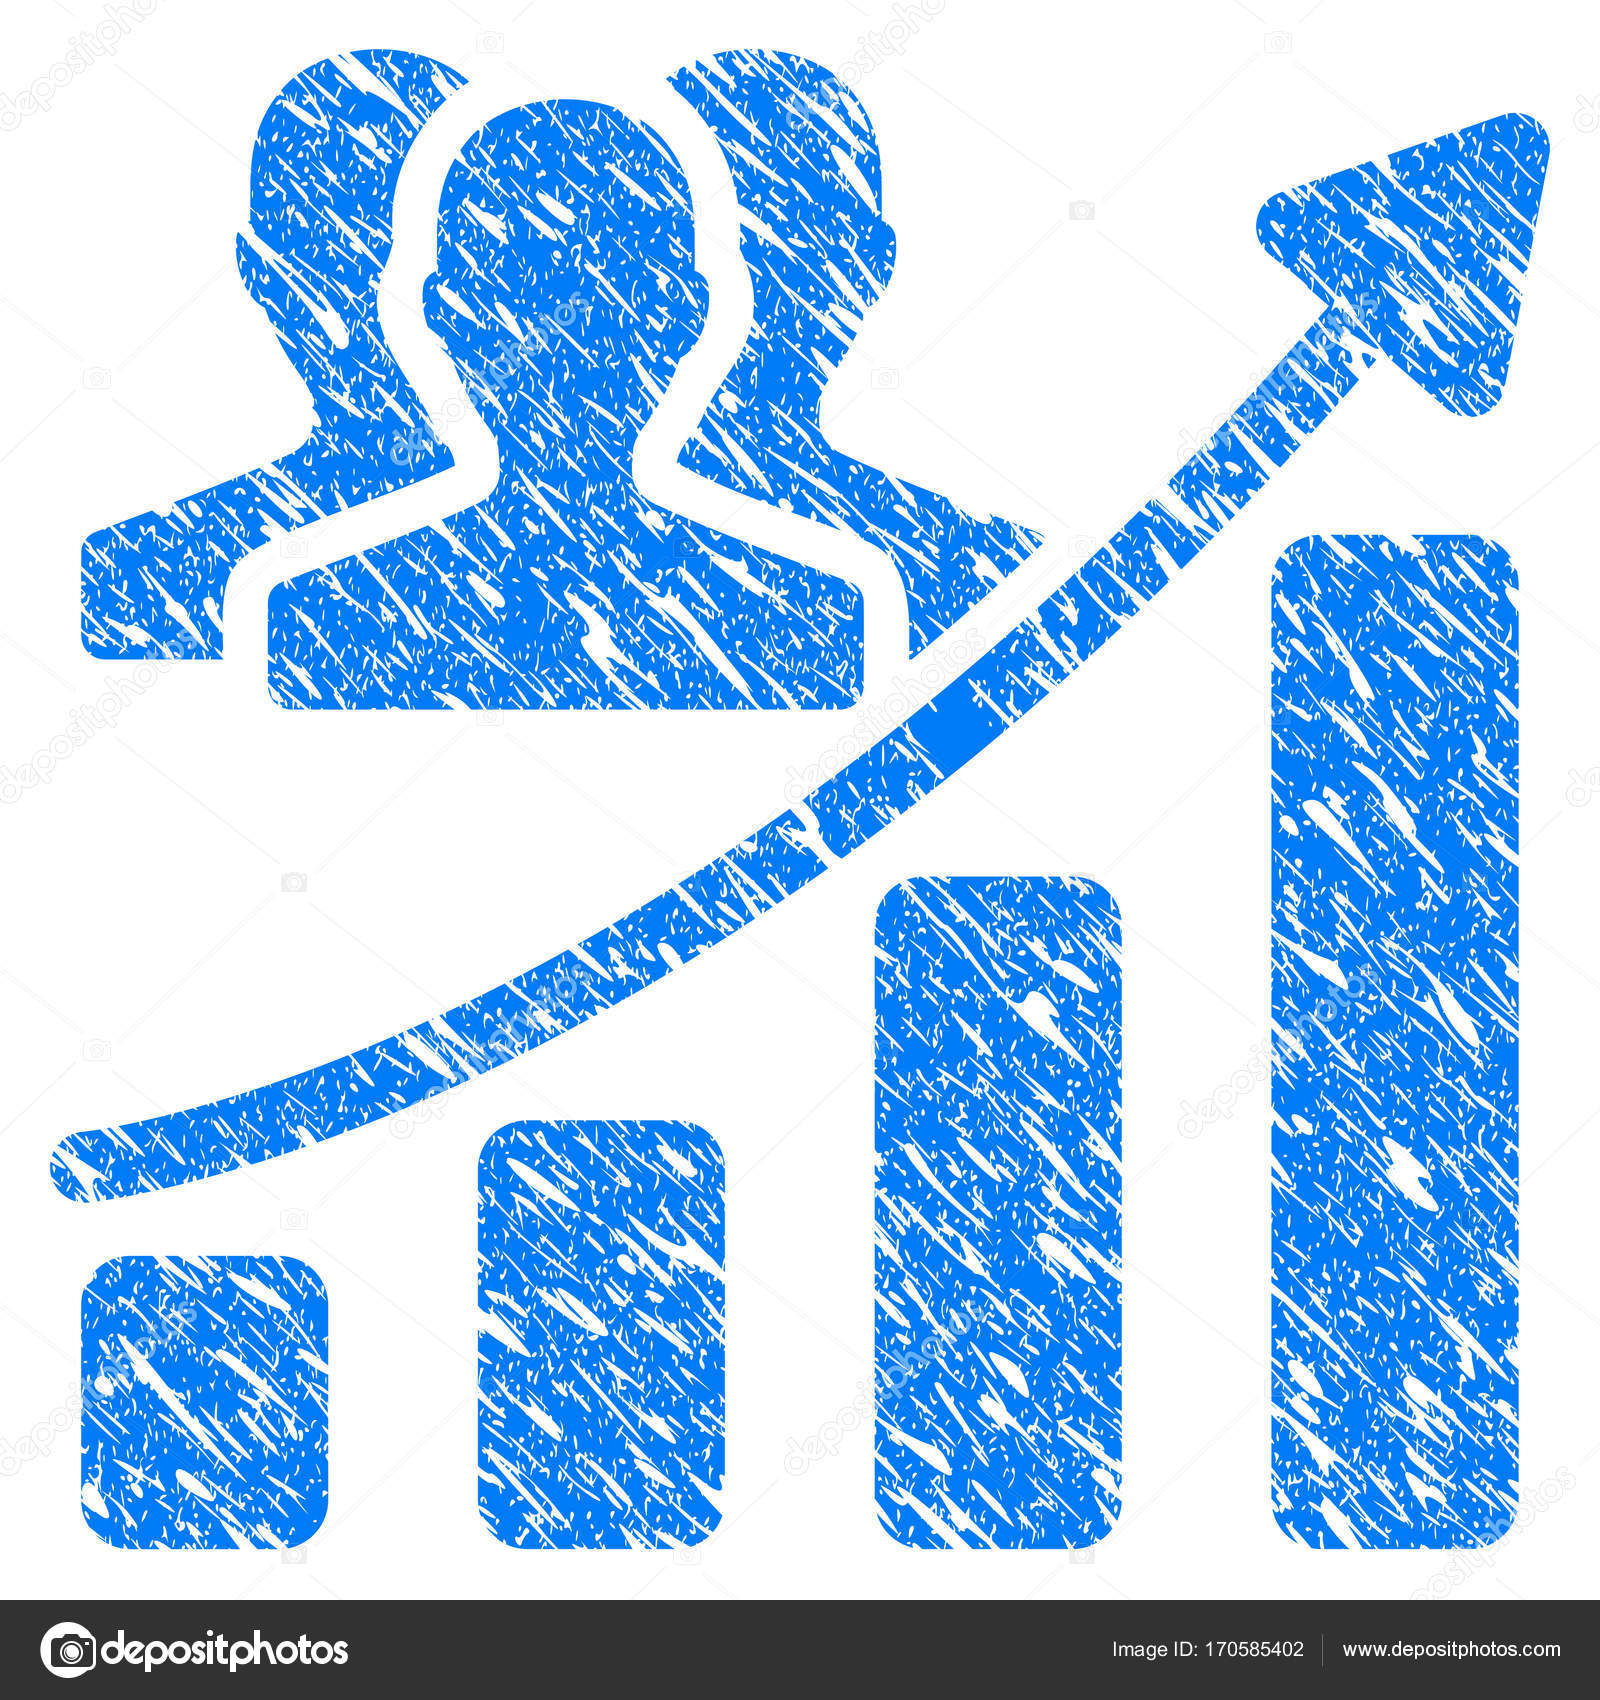 Audience growth chart grunge icon stock vector ahasoft 170585402 audience growth chart grunge icon stock vector nvjuhfo Gallery